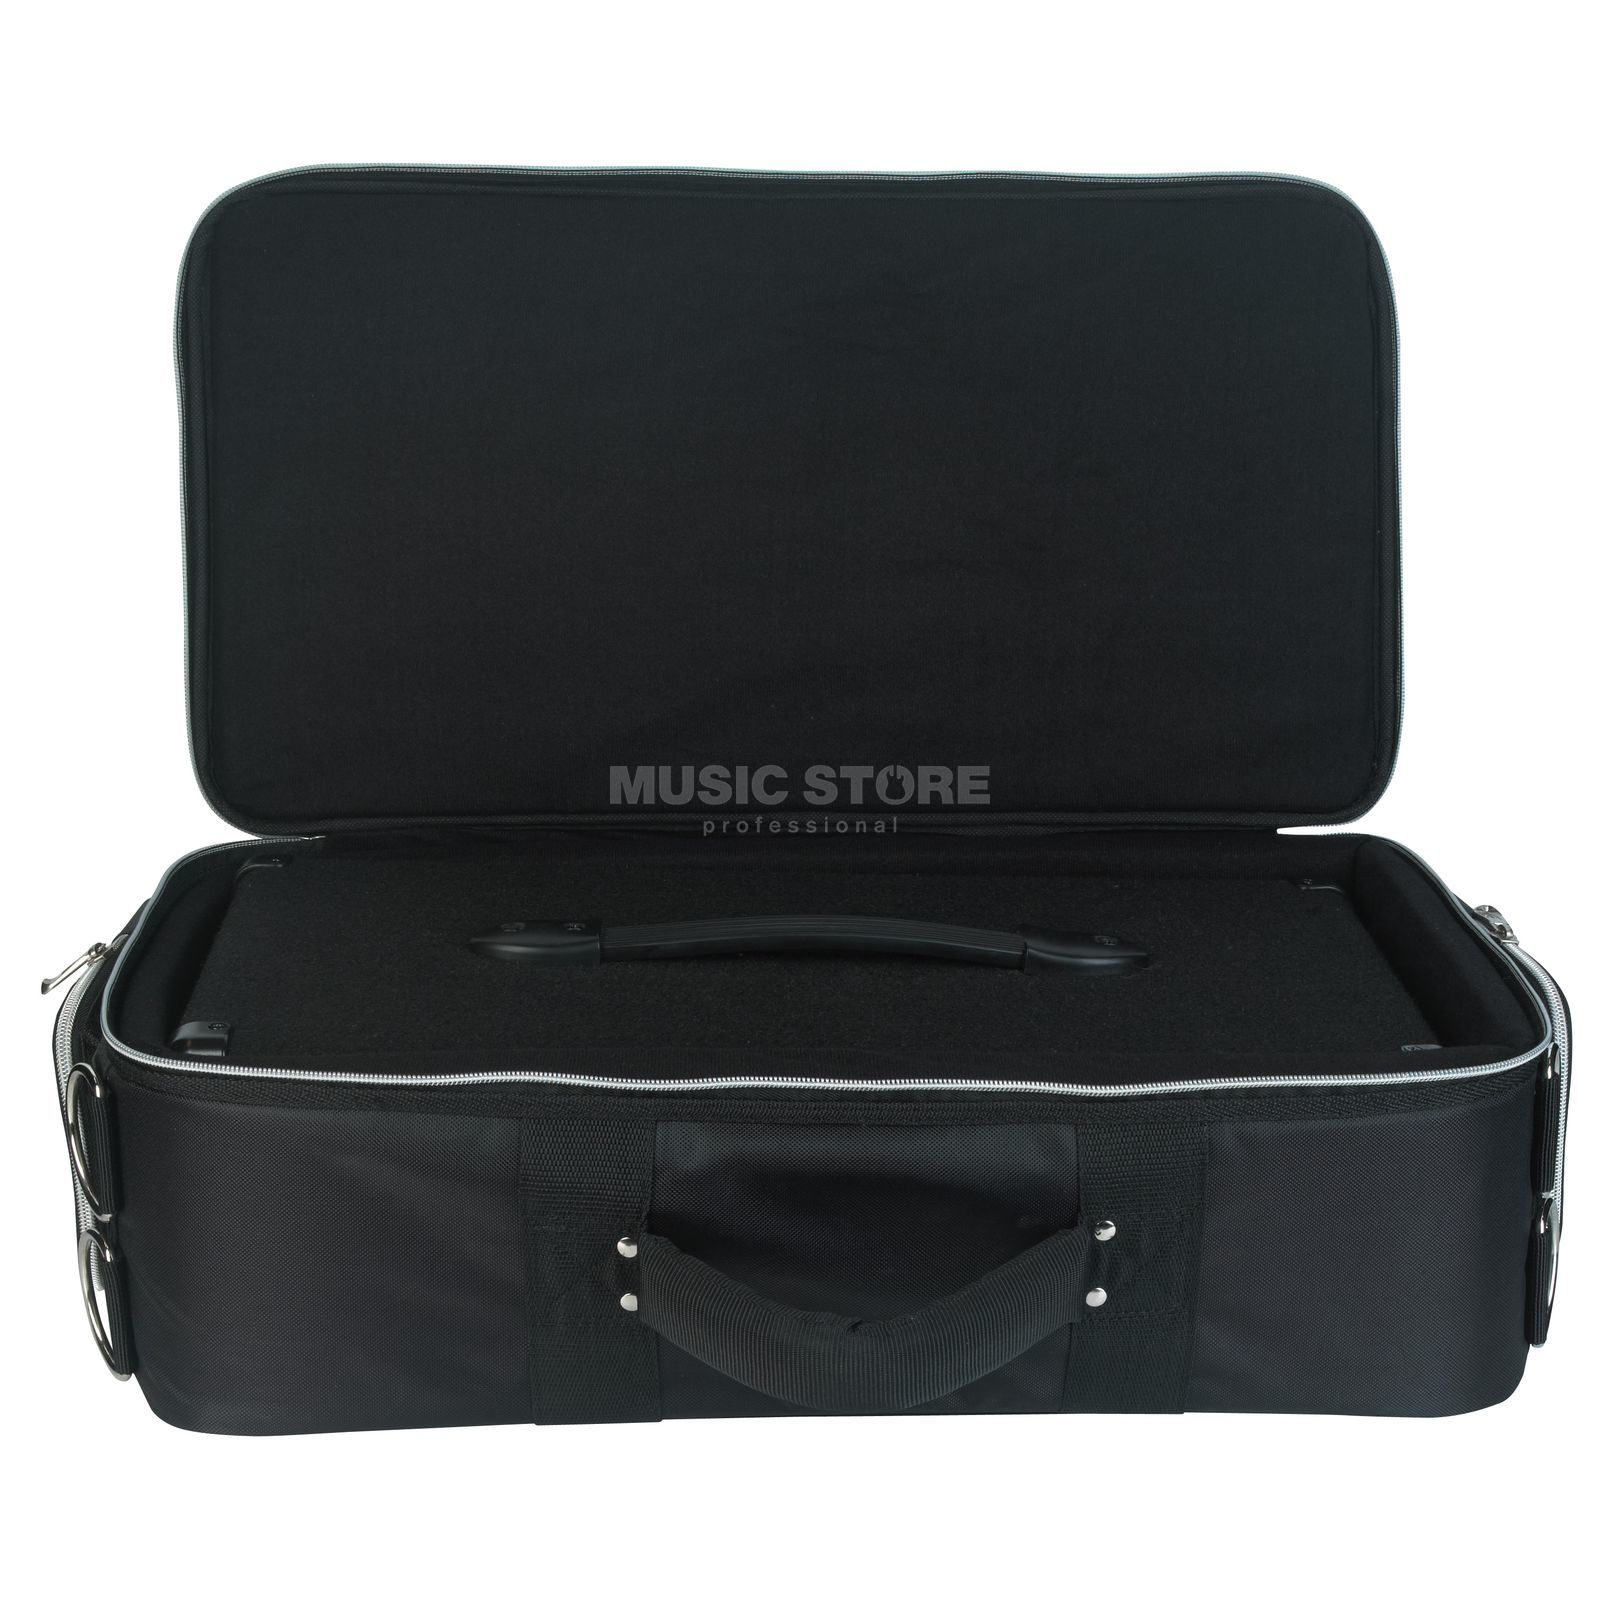 Rockbag RB23009 B Amp Bag WA 600 525 x 385 x 145 mm Product Image